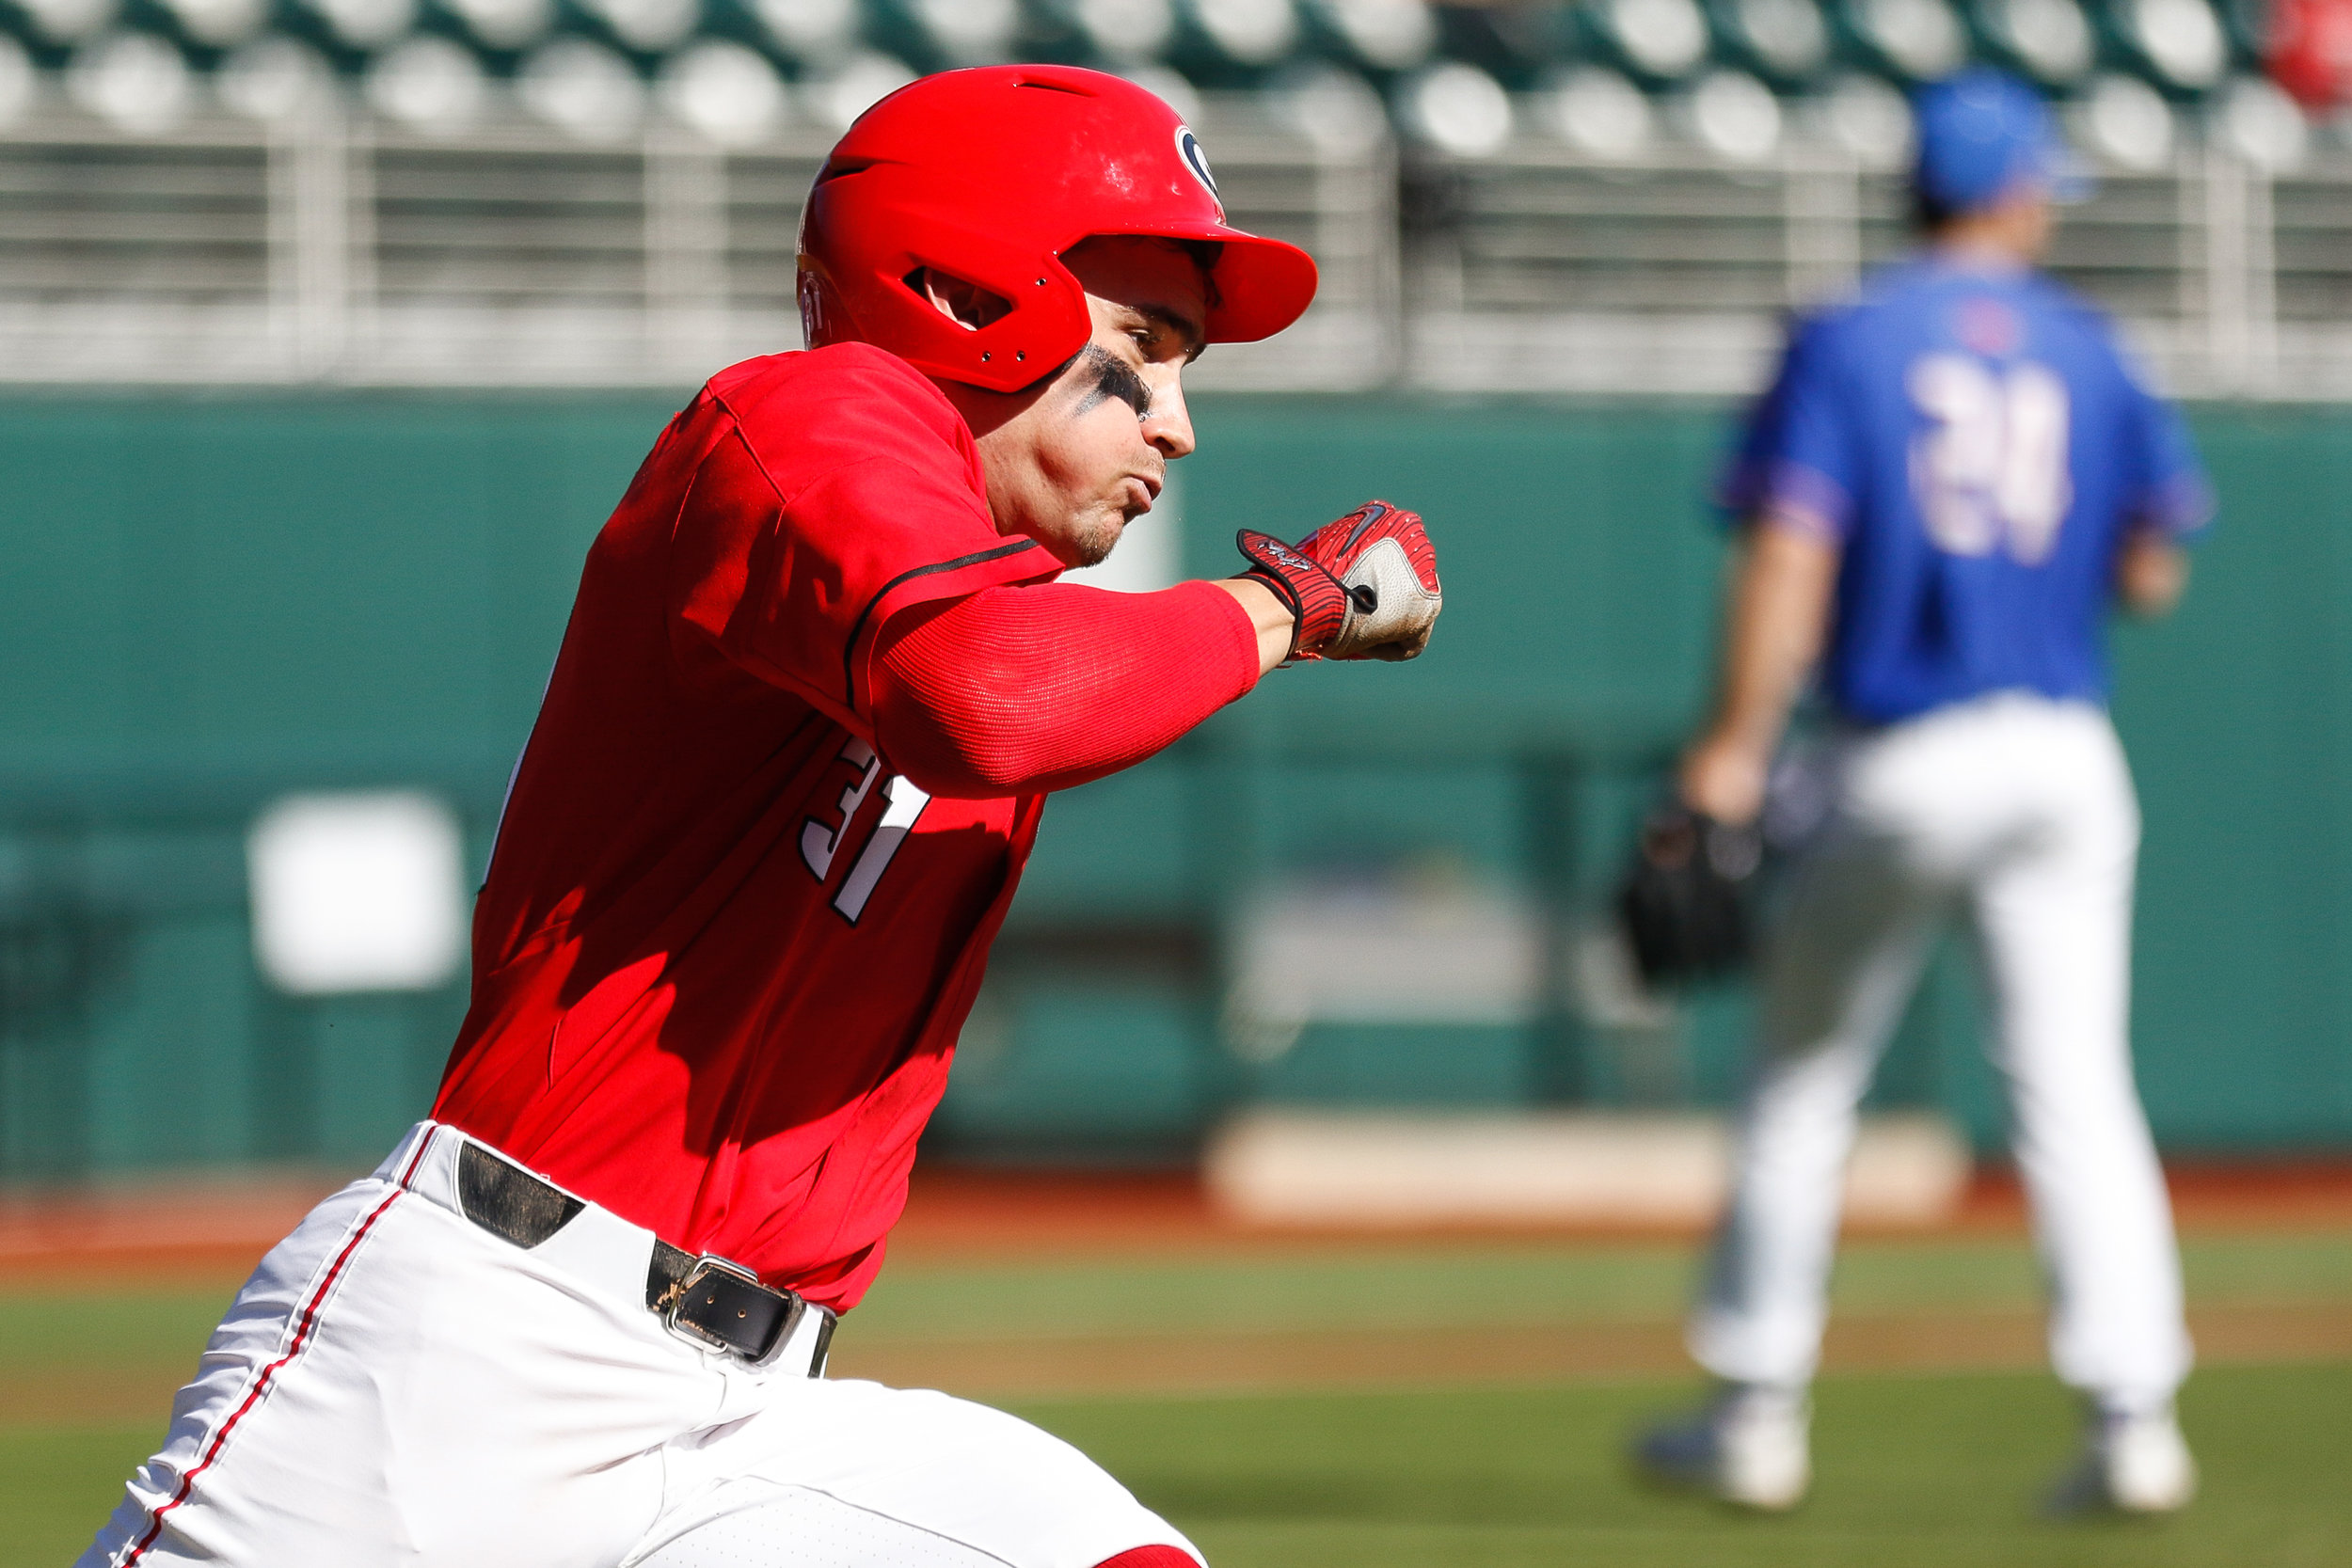 Georgia infielder Riley King (31) hustles to base during a baseball game between the University of Georgia and the University of Massachusetts Lowell in Athens, Ga., on Sunday, Feb. 24, 2019.